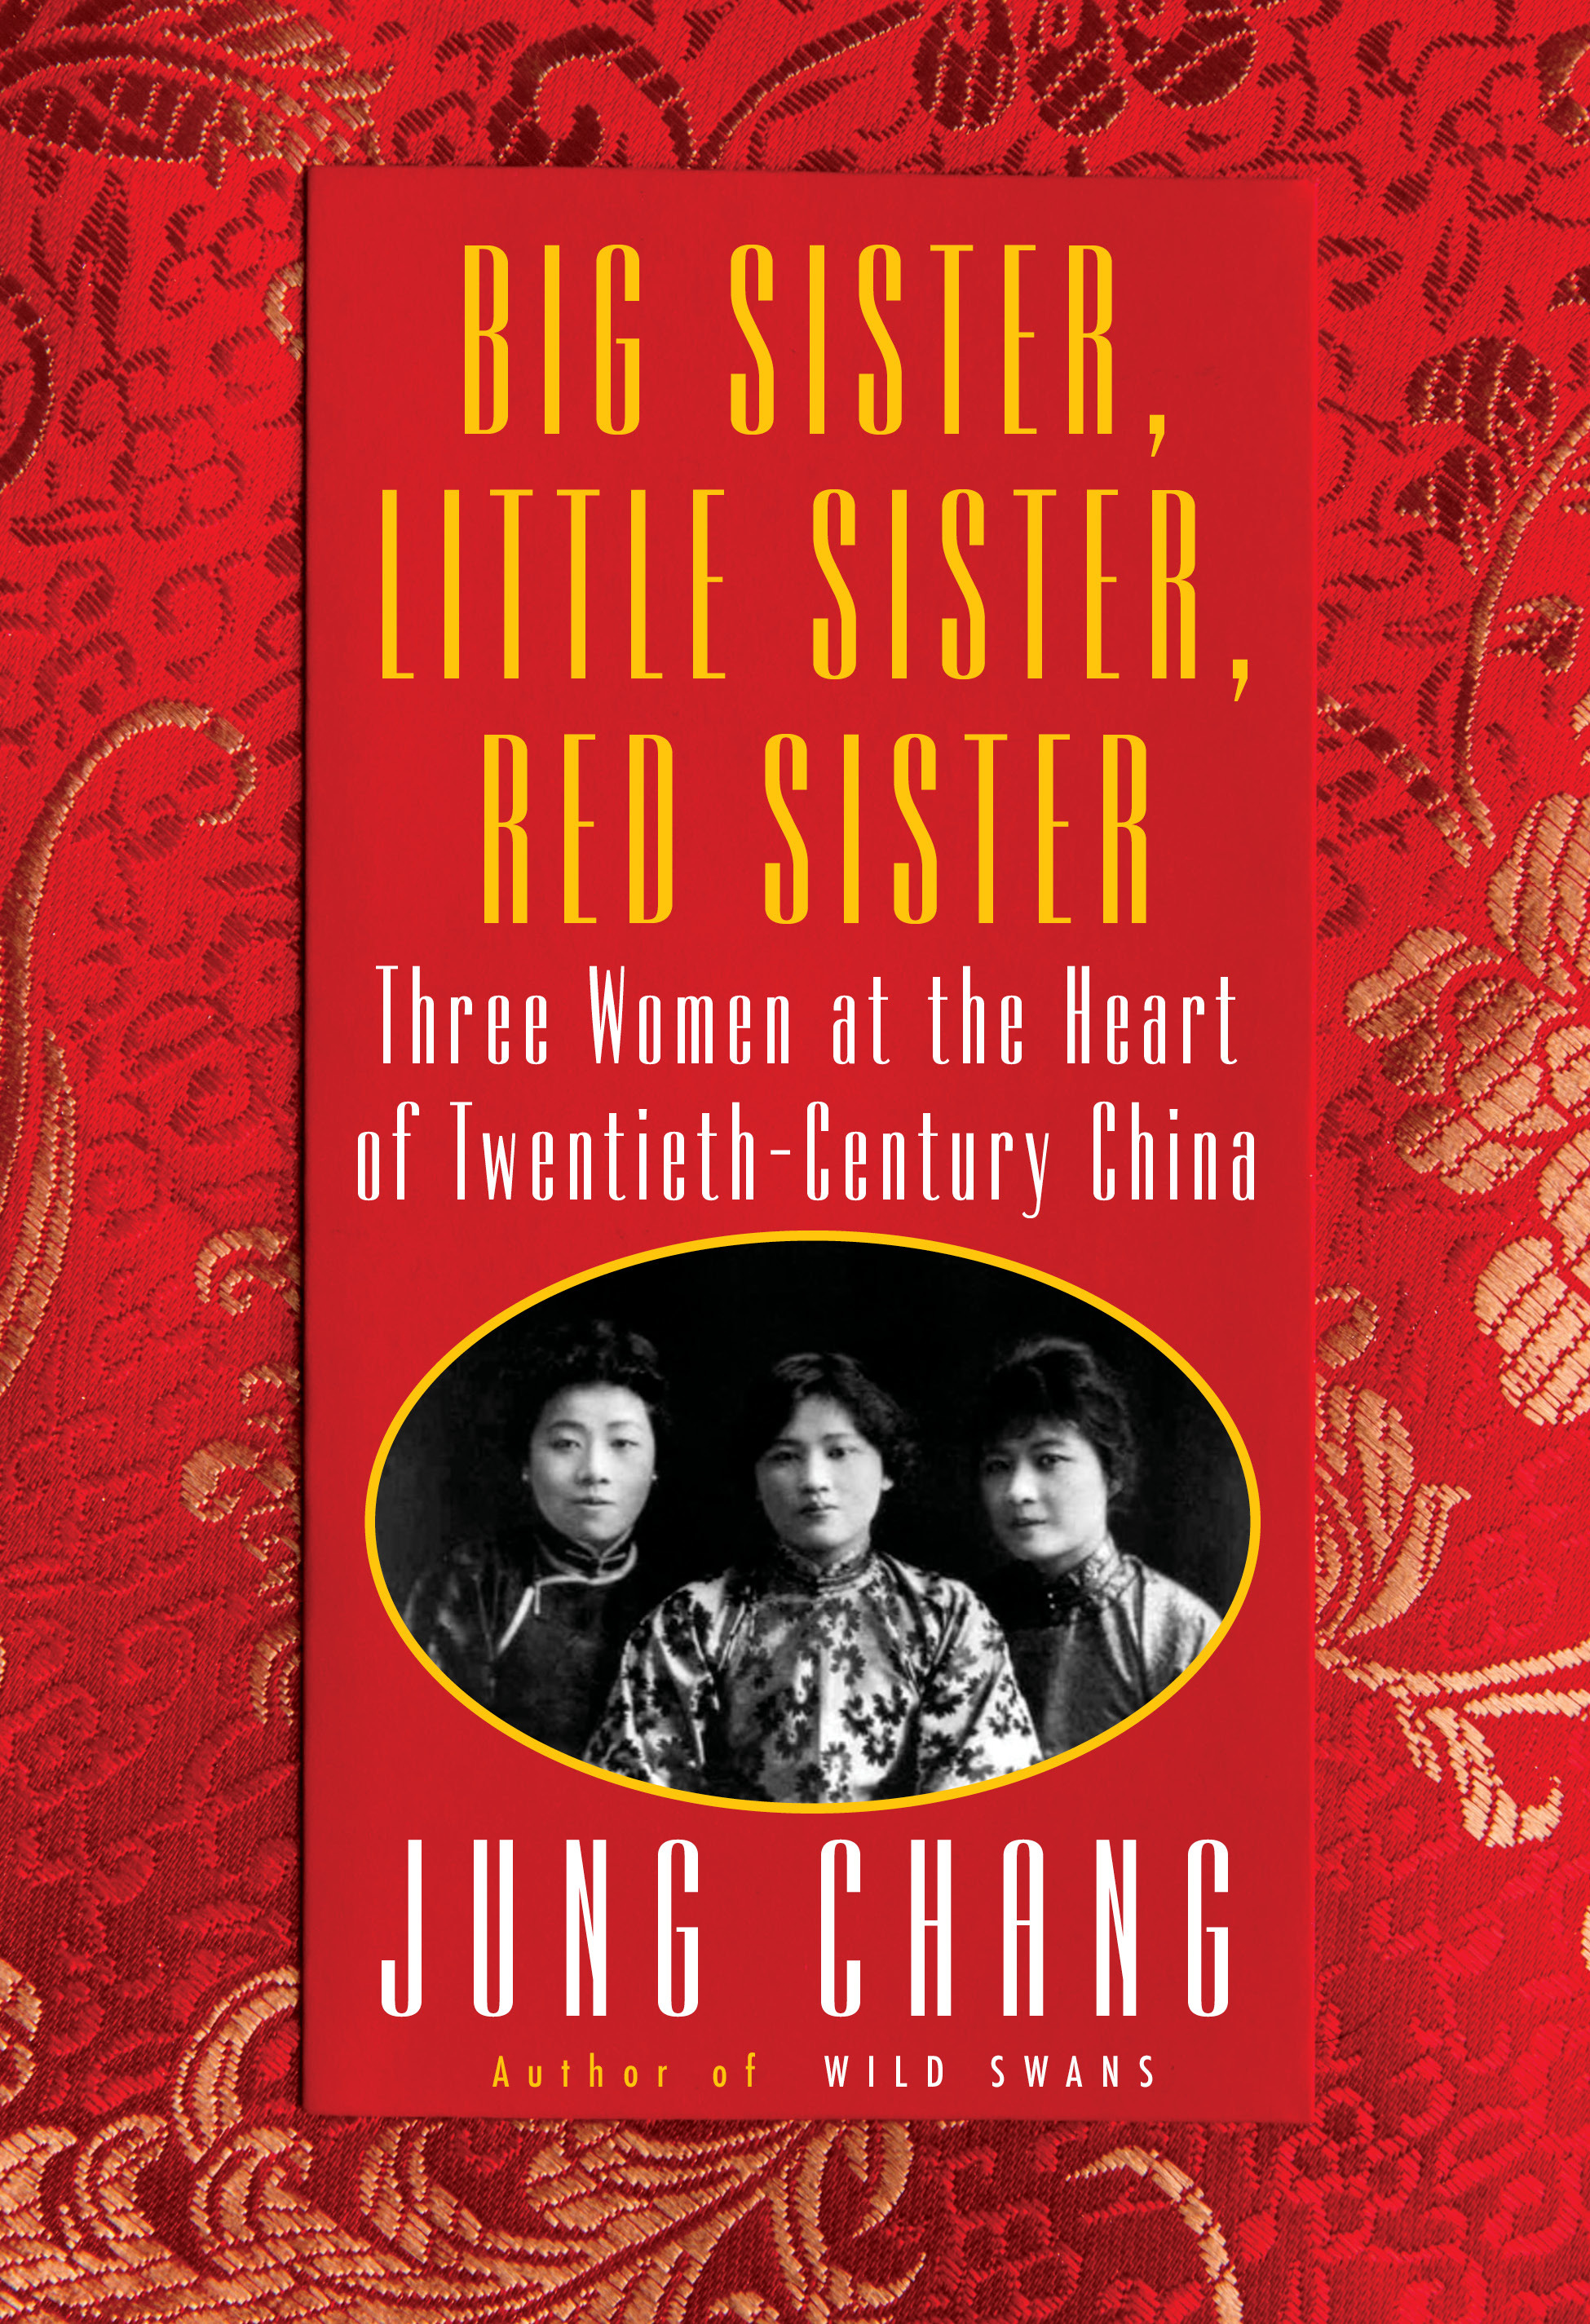 Big Sister, Little Sister, Red Sister is author Jung Chang's new biography of the three Soong sisters